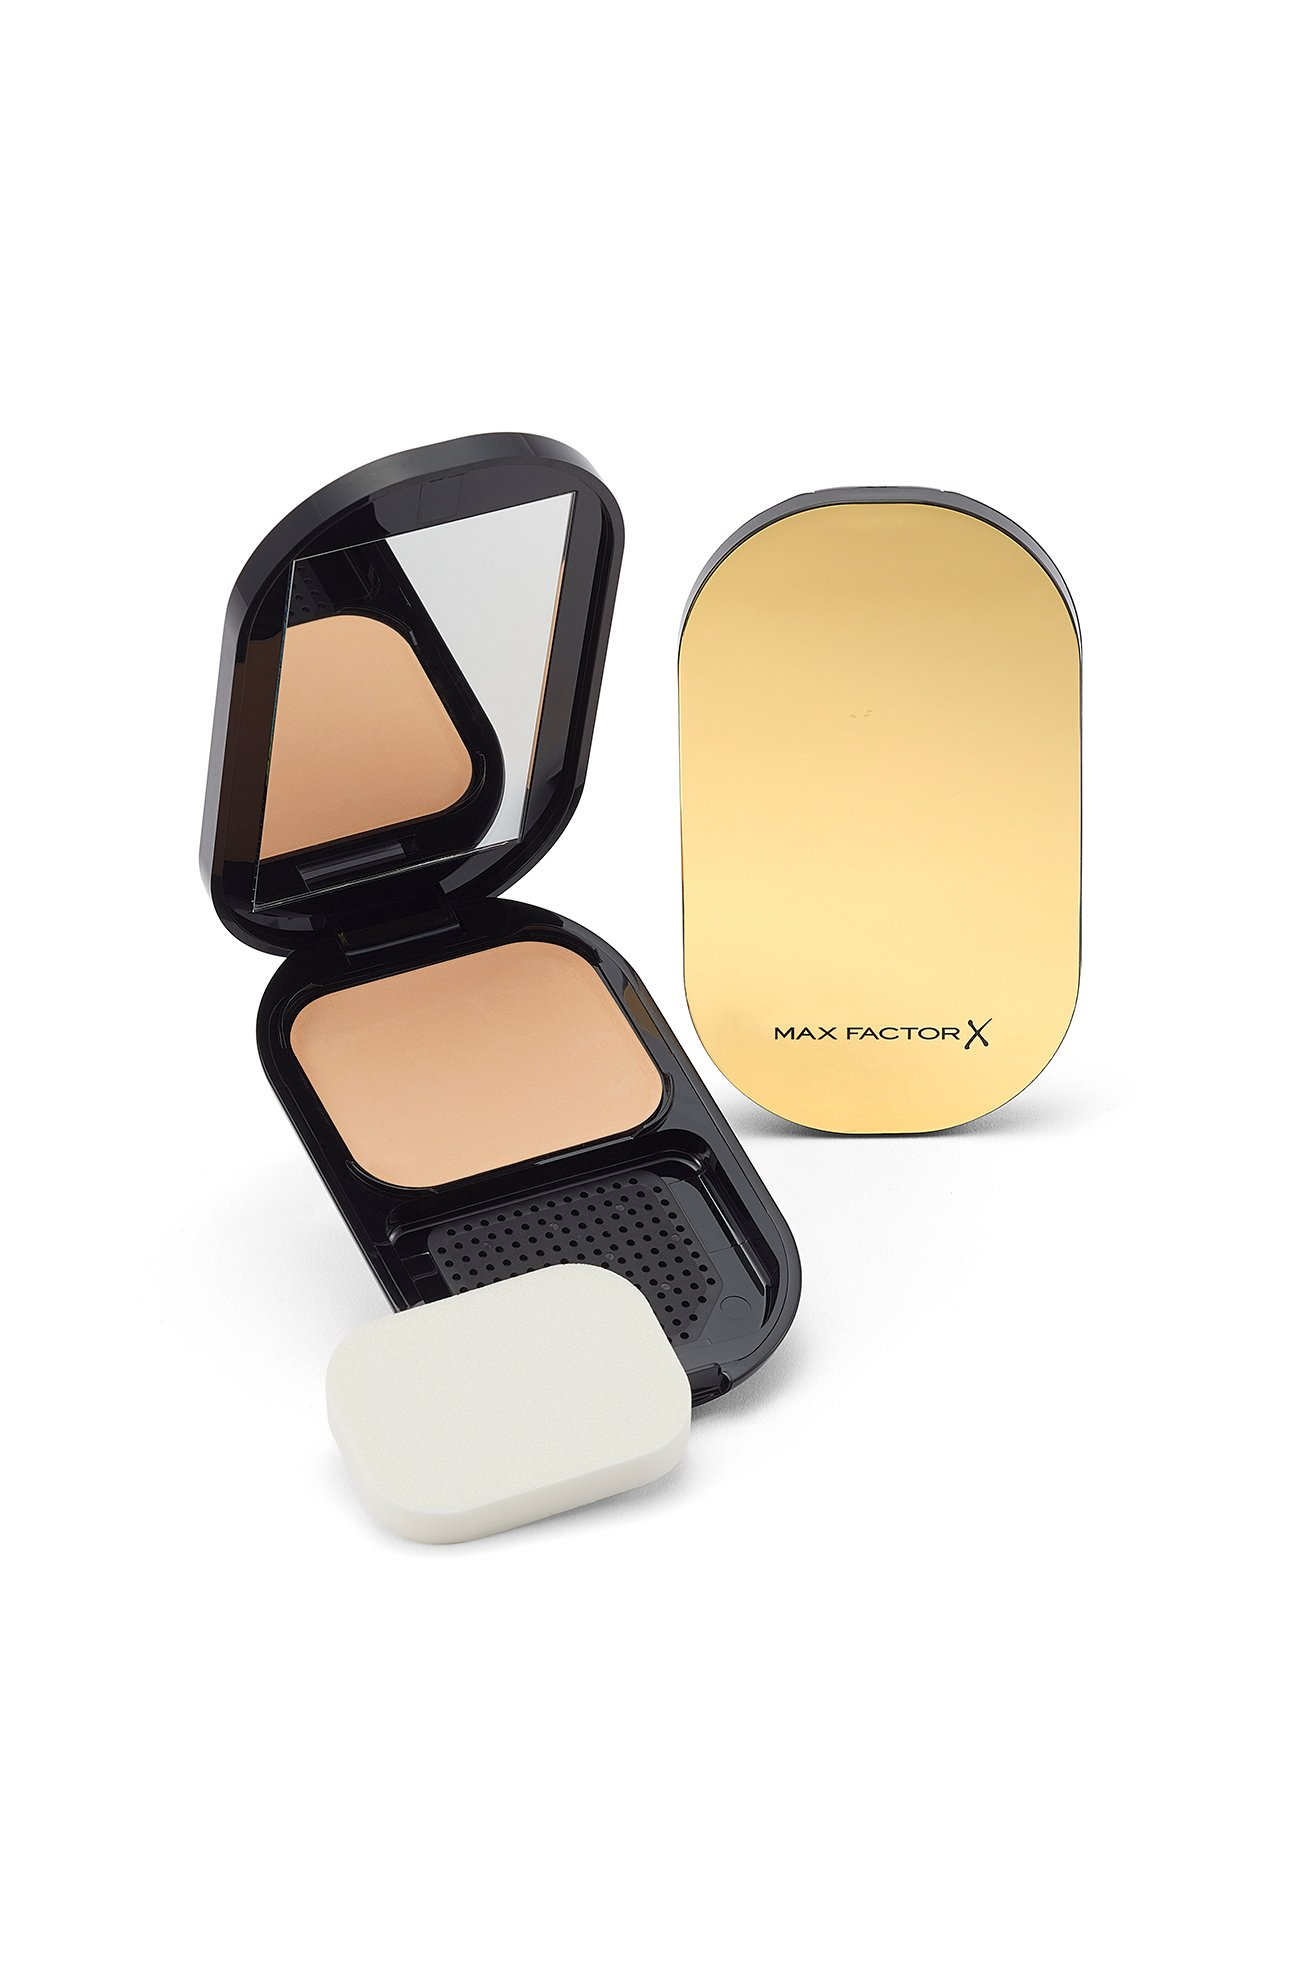 Max Factor - Facefinity Compact Foundation - Ivory